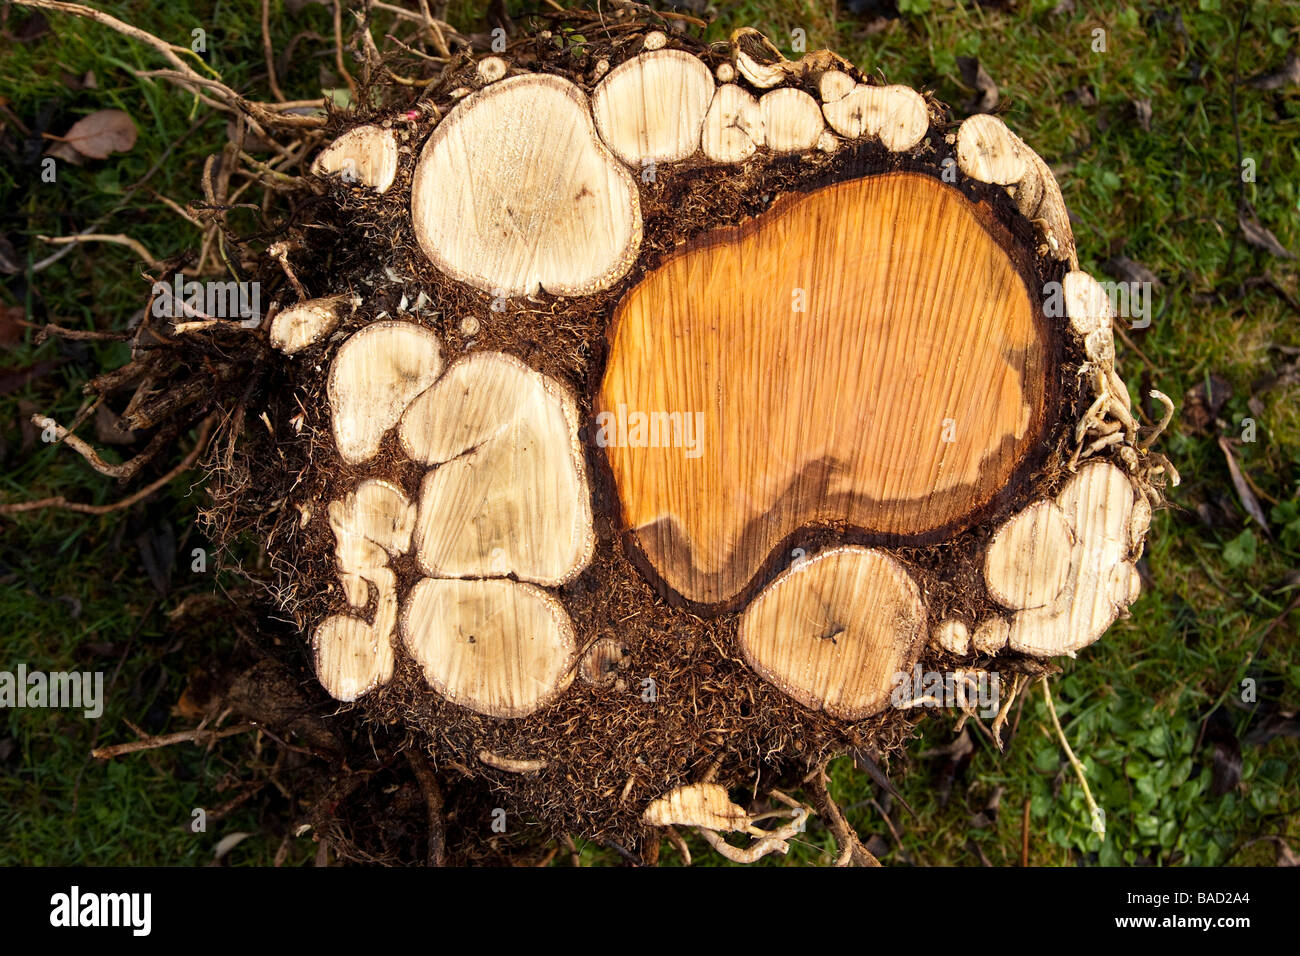 Cross section of tree trunk covered in ivy branches stock for What is a tree trunk covered with 4 letters